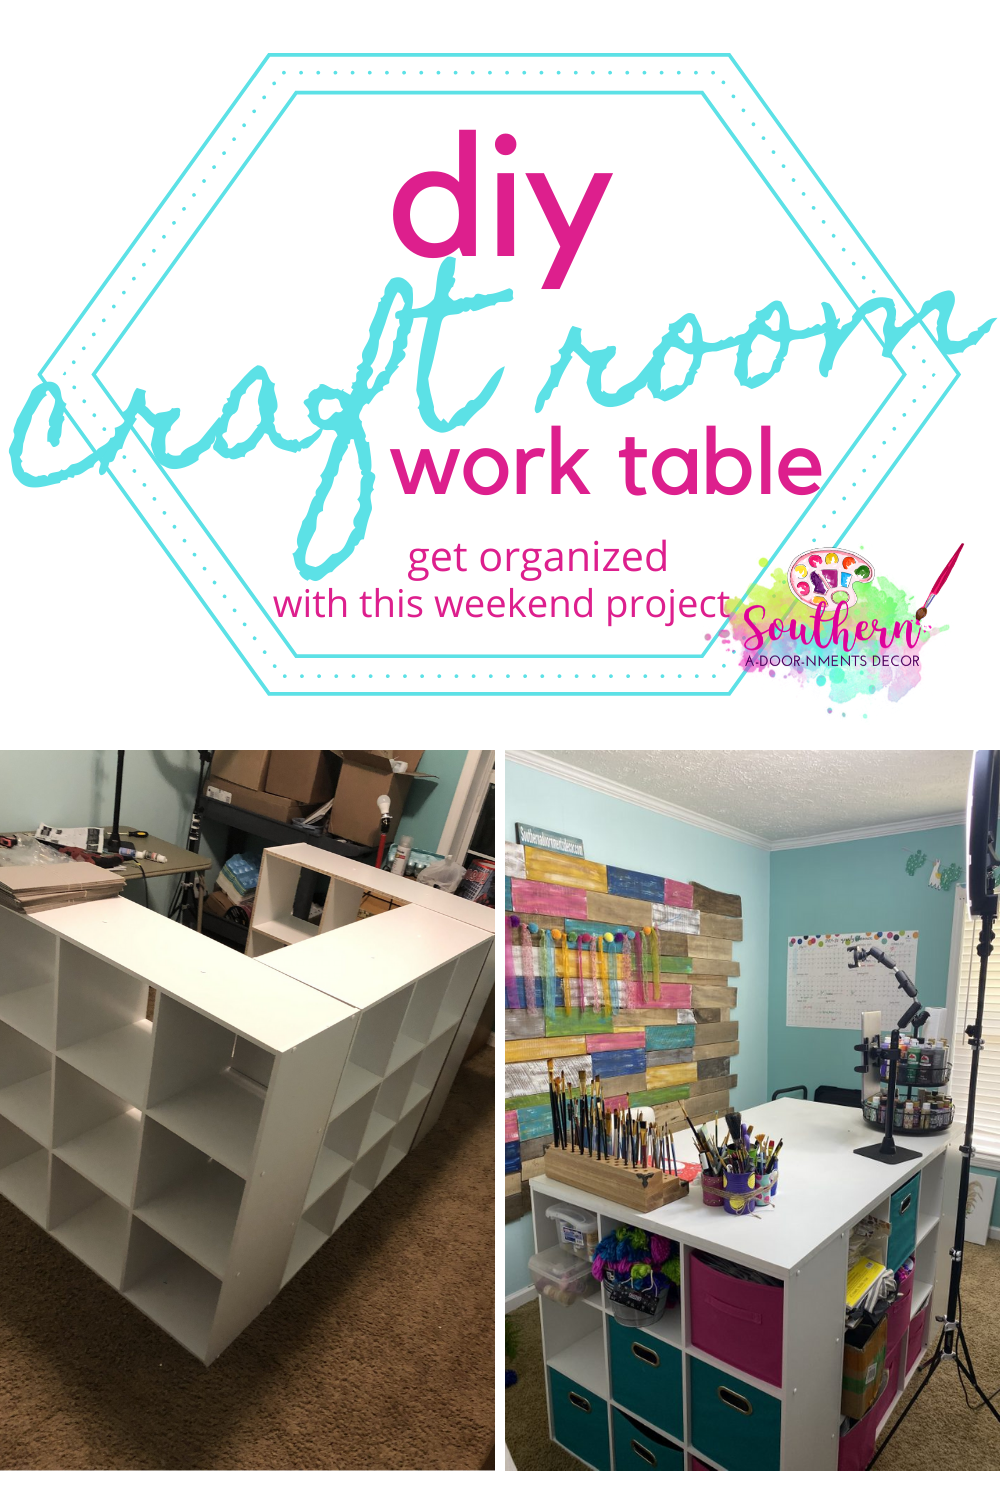 Diy Desk Island For Your Craft Room Southern Adoornments Decor Craft Tables With Storage Craft Table Diy Diy Crafts Desk